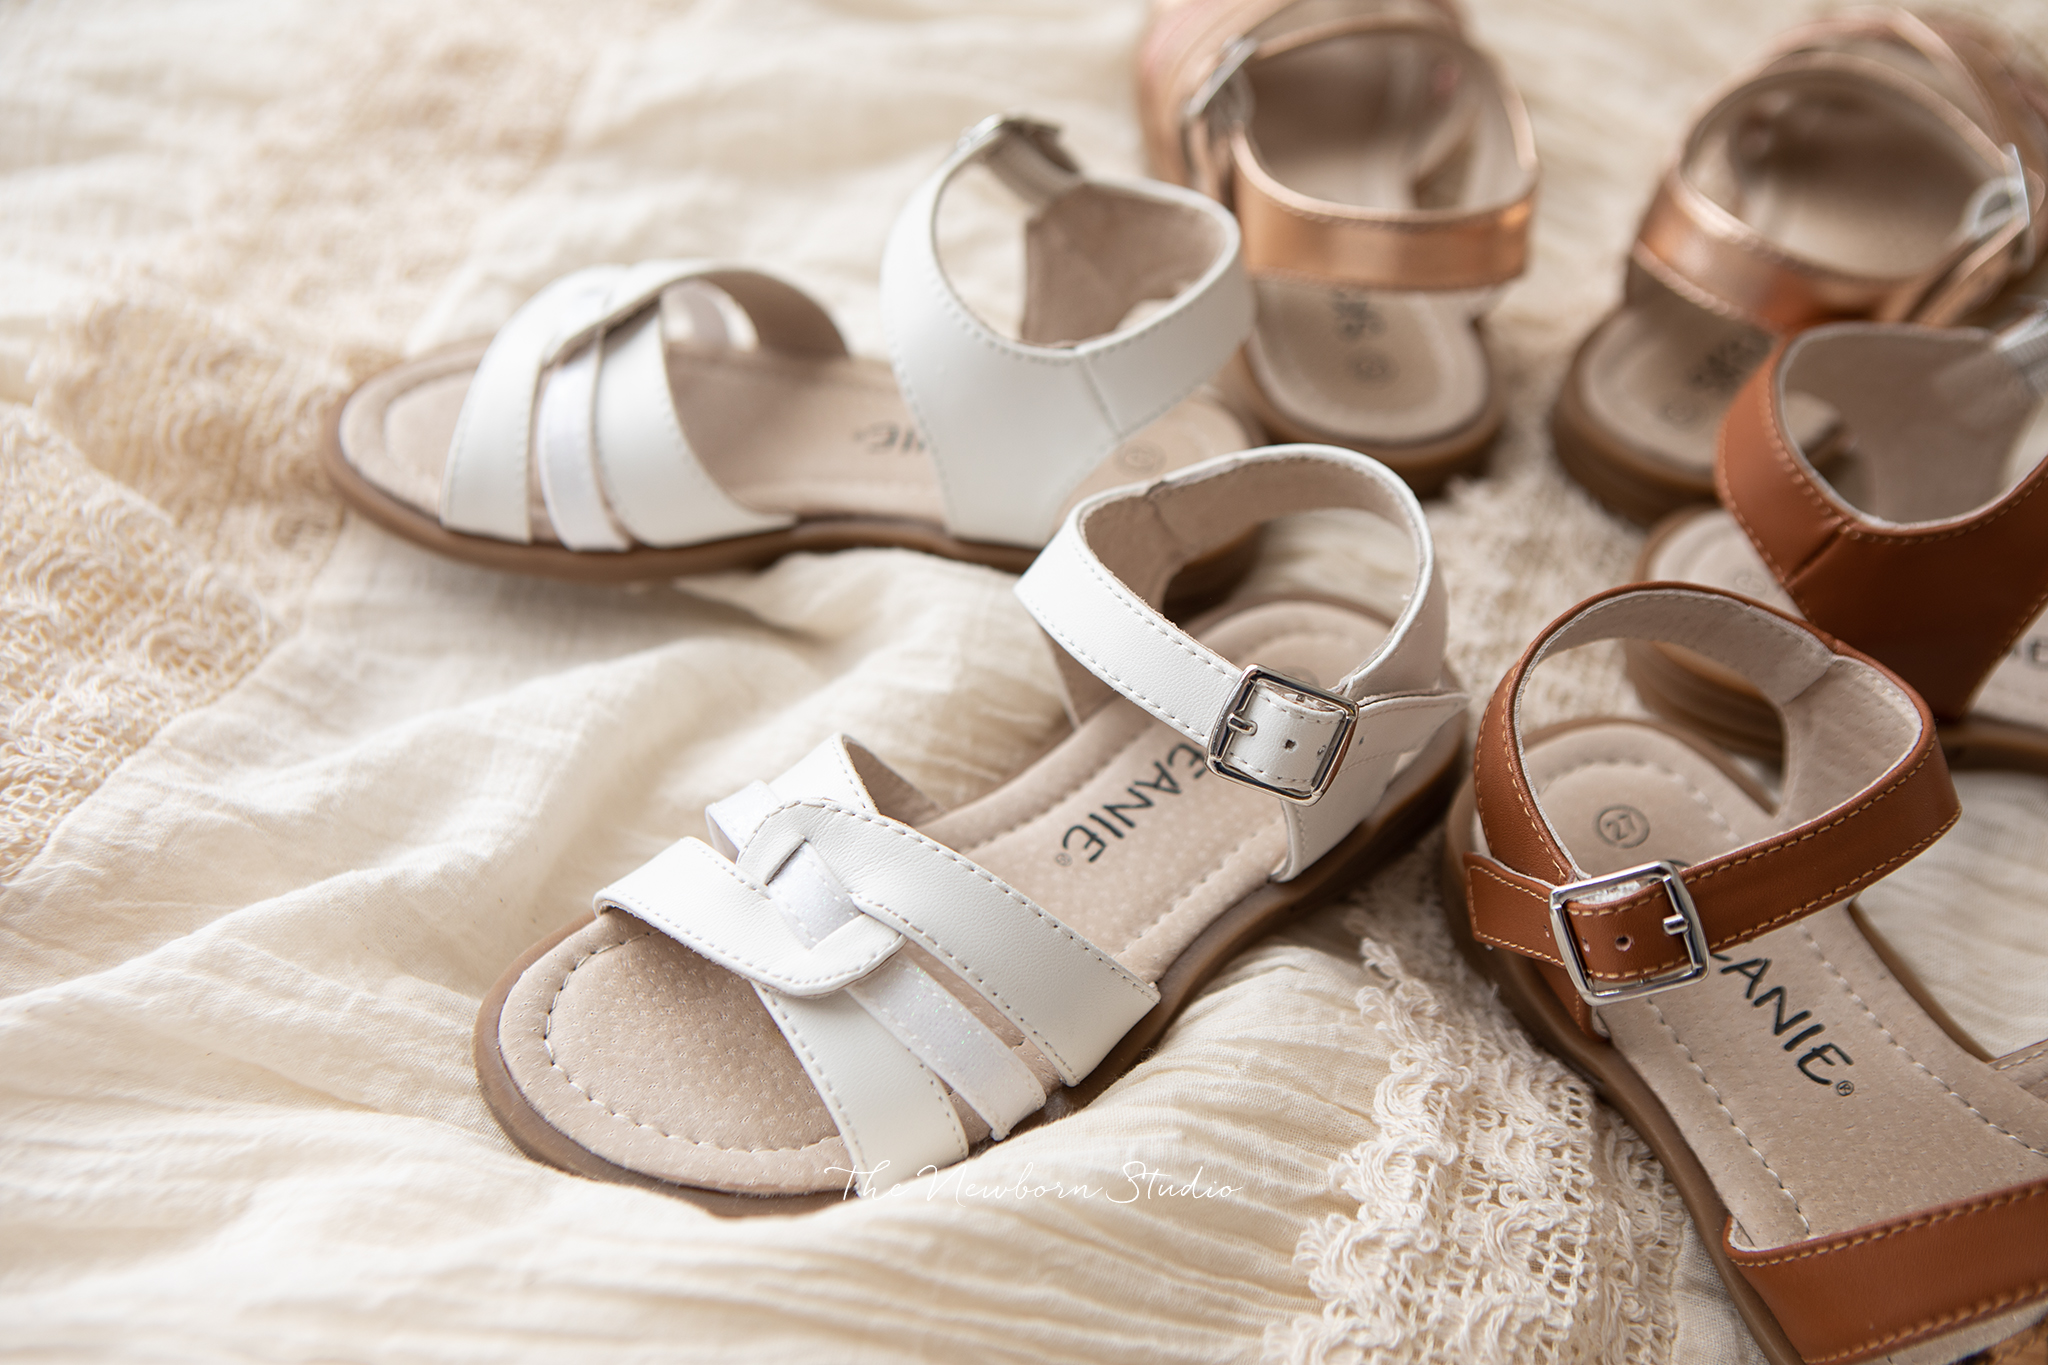 commercial flatlay photographer shoes